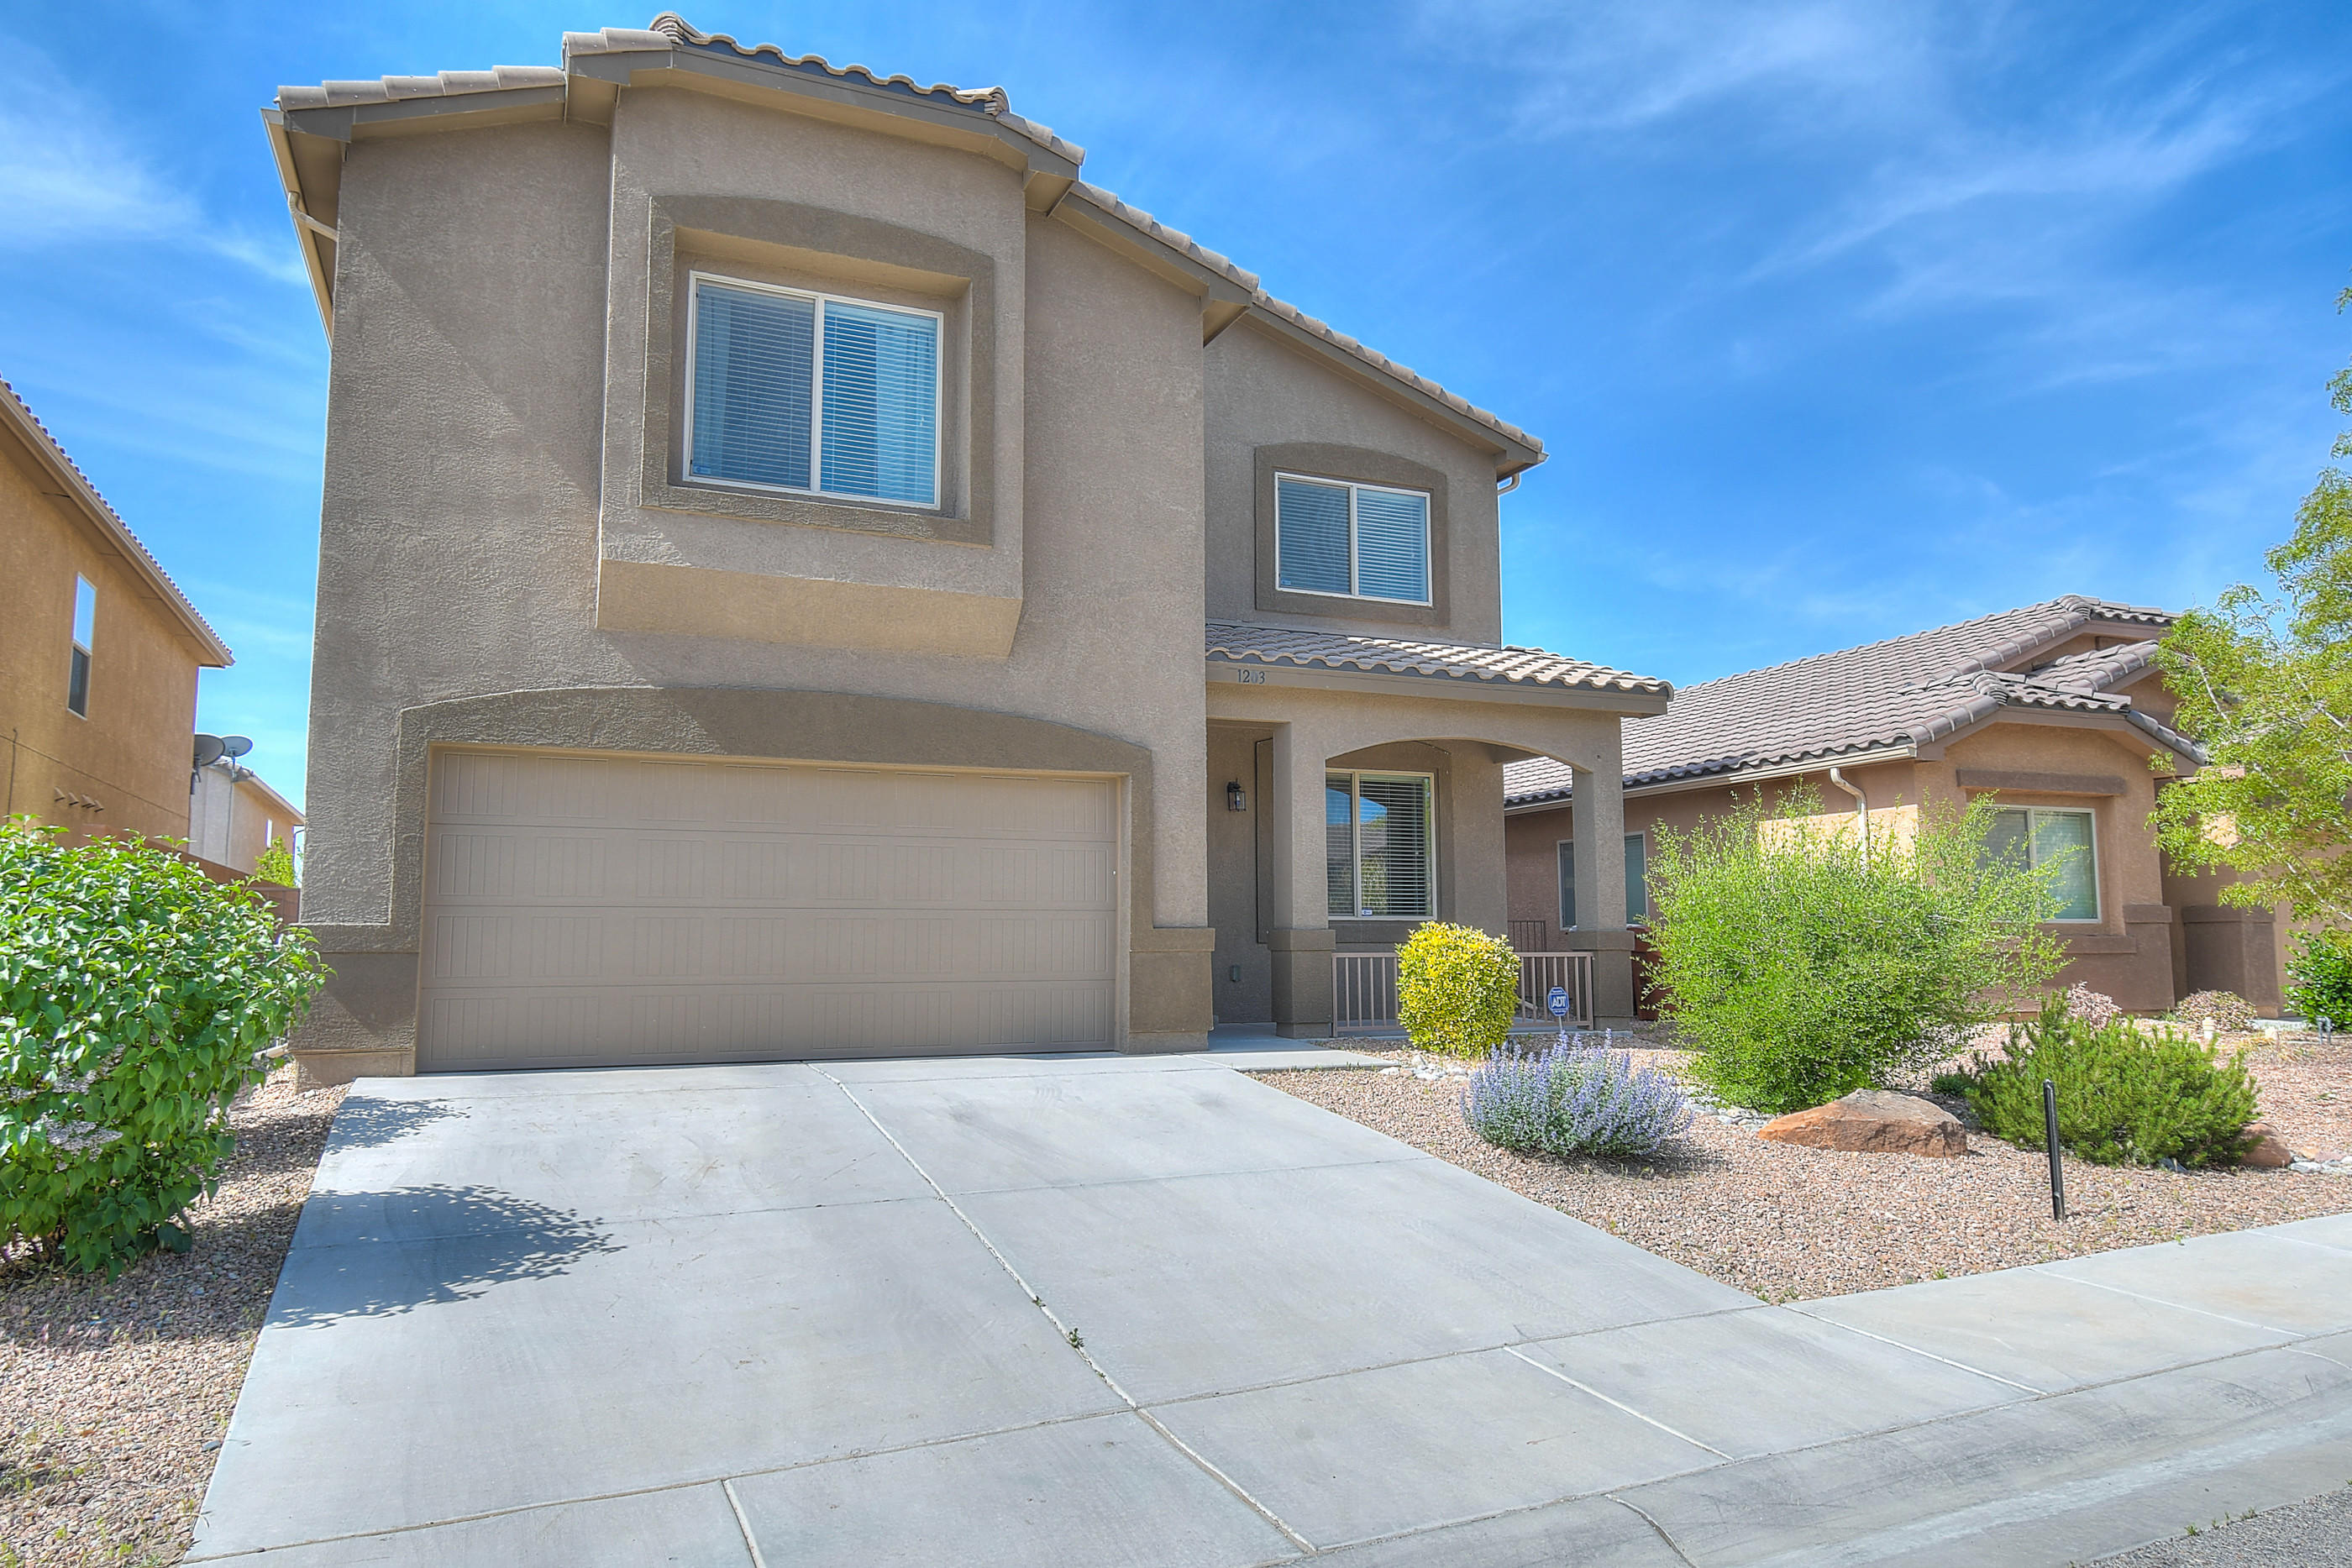 Welcome Home to this beautiful DR Horton home in Estancia at Santiago. This home features 2,667 sq. ft w/3 Bedrooms, 2.5 baths, and a 2-car garage. This home has plenty of room for your family with 2 Living Areas and a oversized Loft upstairs. Kitchen features maple cabinets, tile backsplash, large island and pantry as well as stainless steel appliances. Home features upgraded tile floor throughout the lower level and all wet areas upstairs. Giant Master Bedroom which leads to a large walk-in closet and master bath with soaking tub, separate shower and double sinks. Retreat to this welcoming fully landscaped backyard with covered patio. Great location close to shopping, dining and easy access to I-25 for a quick drive into Albuquerque or Santa Fe